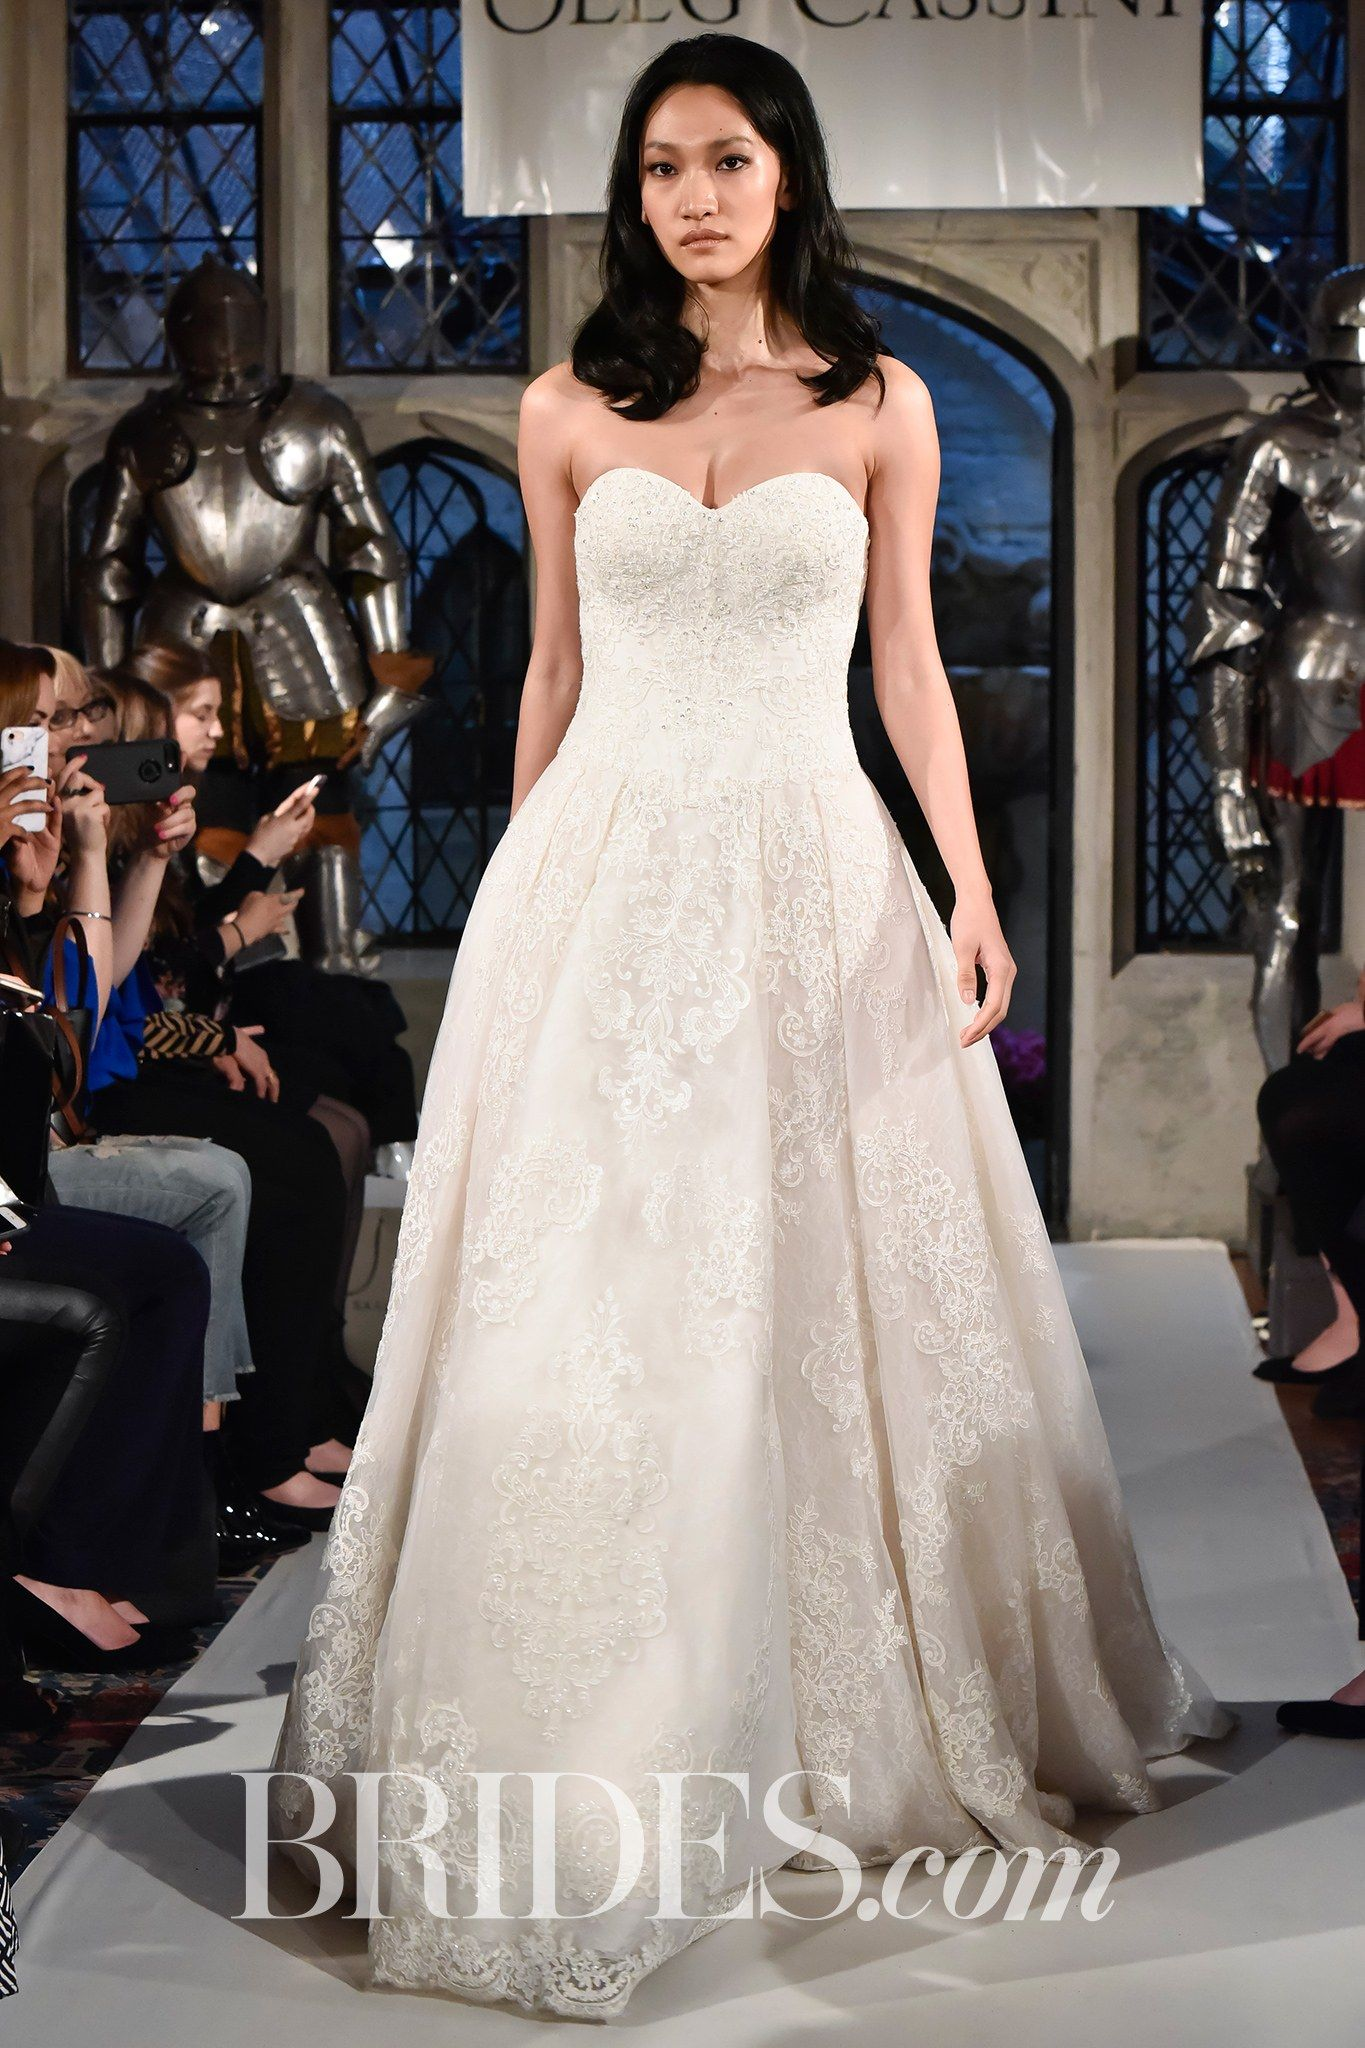 Oleg cassini bridal u wedding dress collection spring brides